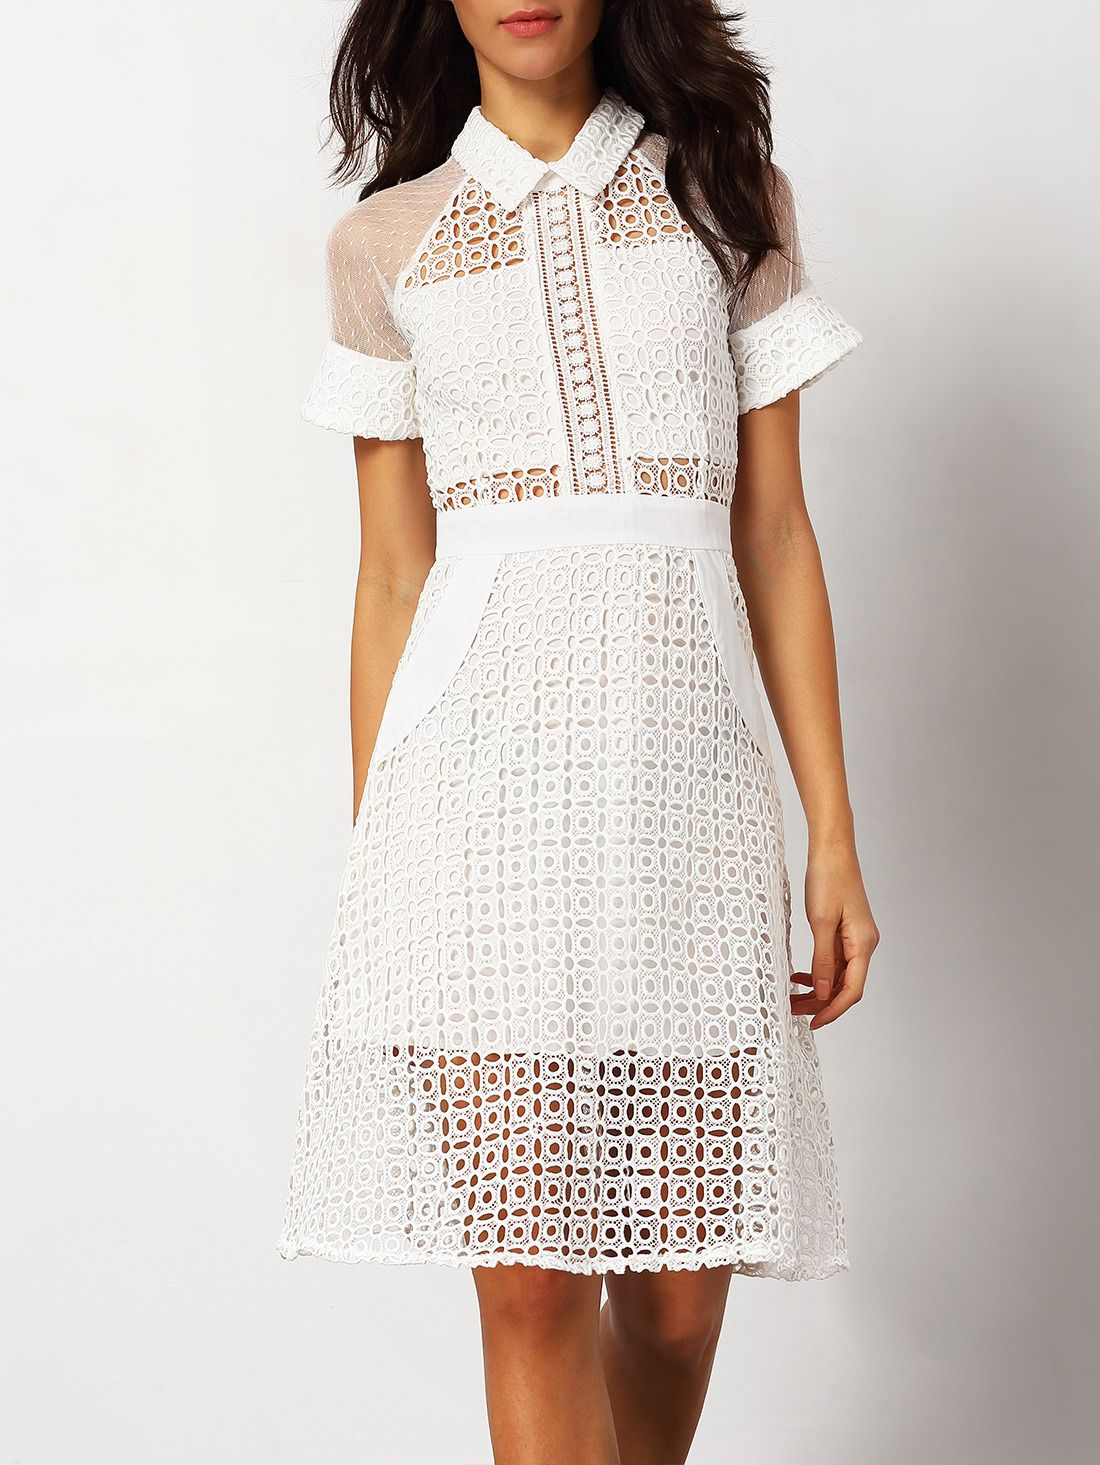 d9d9f1cbadd Shop White Short Sleeve Hollow Sheer Dress online. SheIn offers White Short  Sleeve Hollow Sheer Dress   more to fit your fashionable needs.